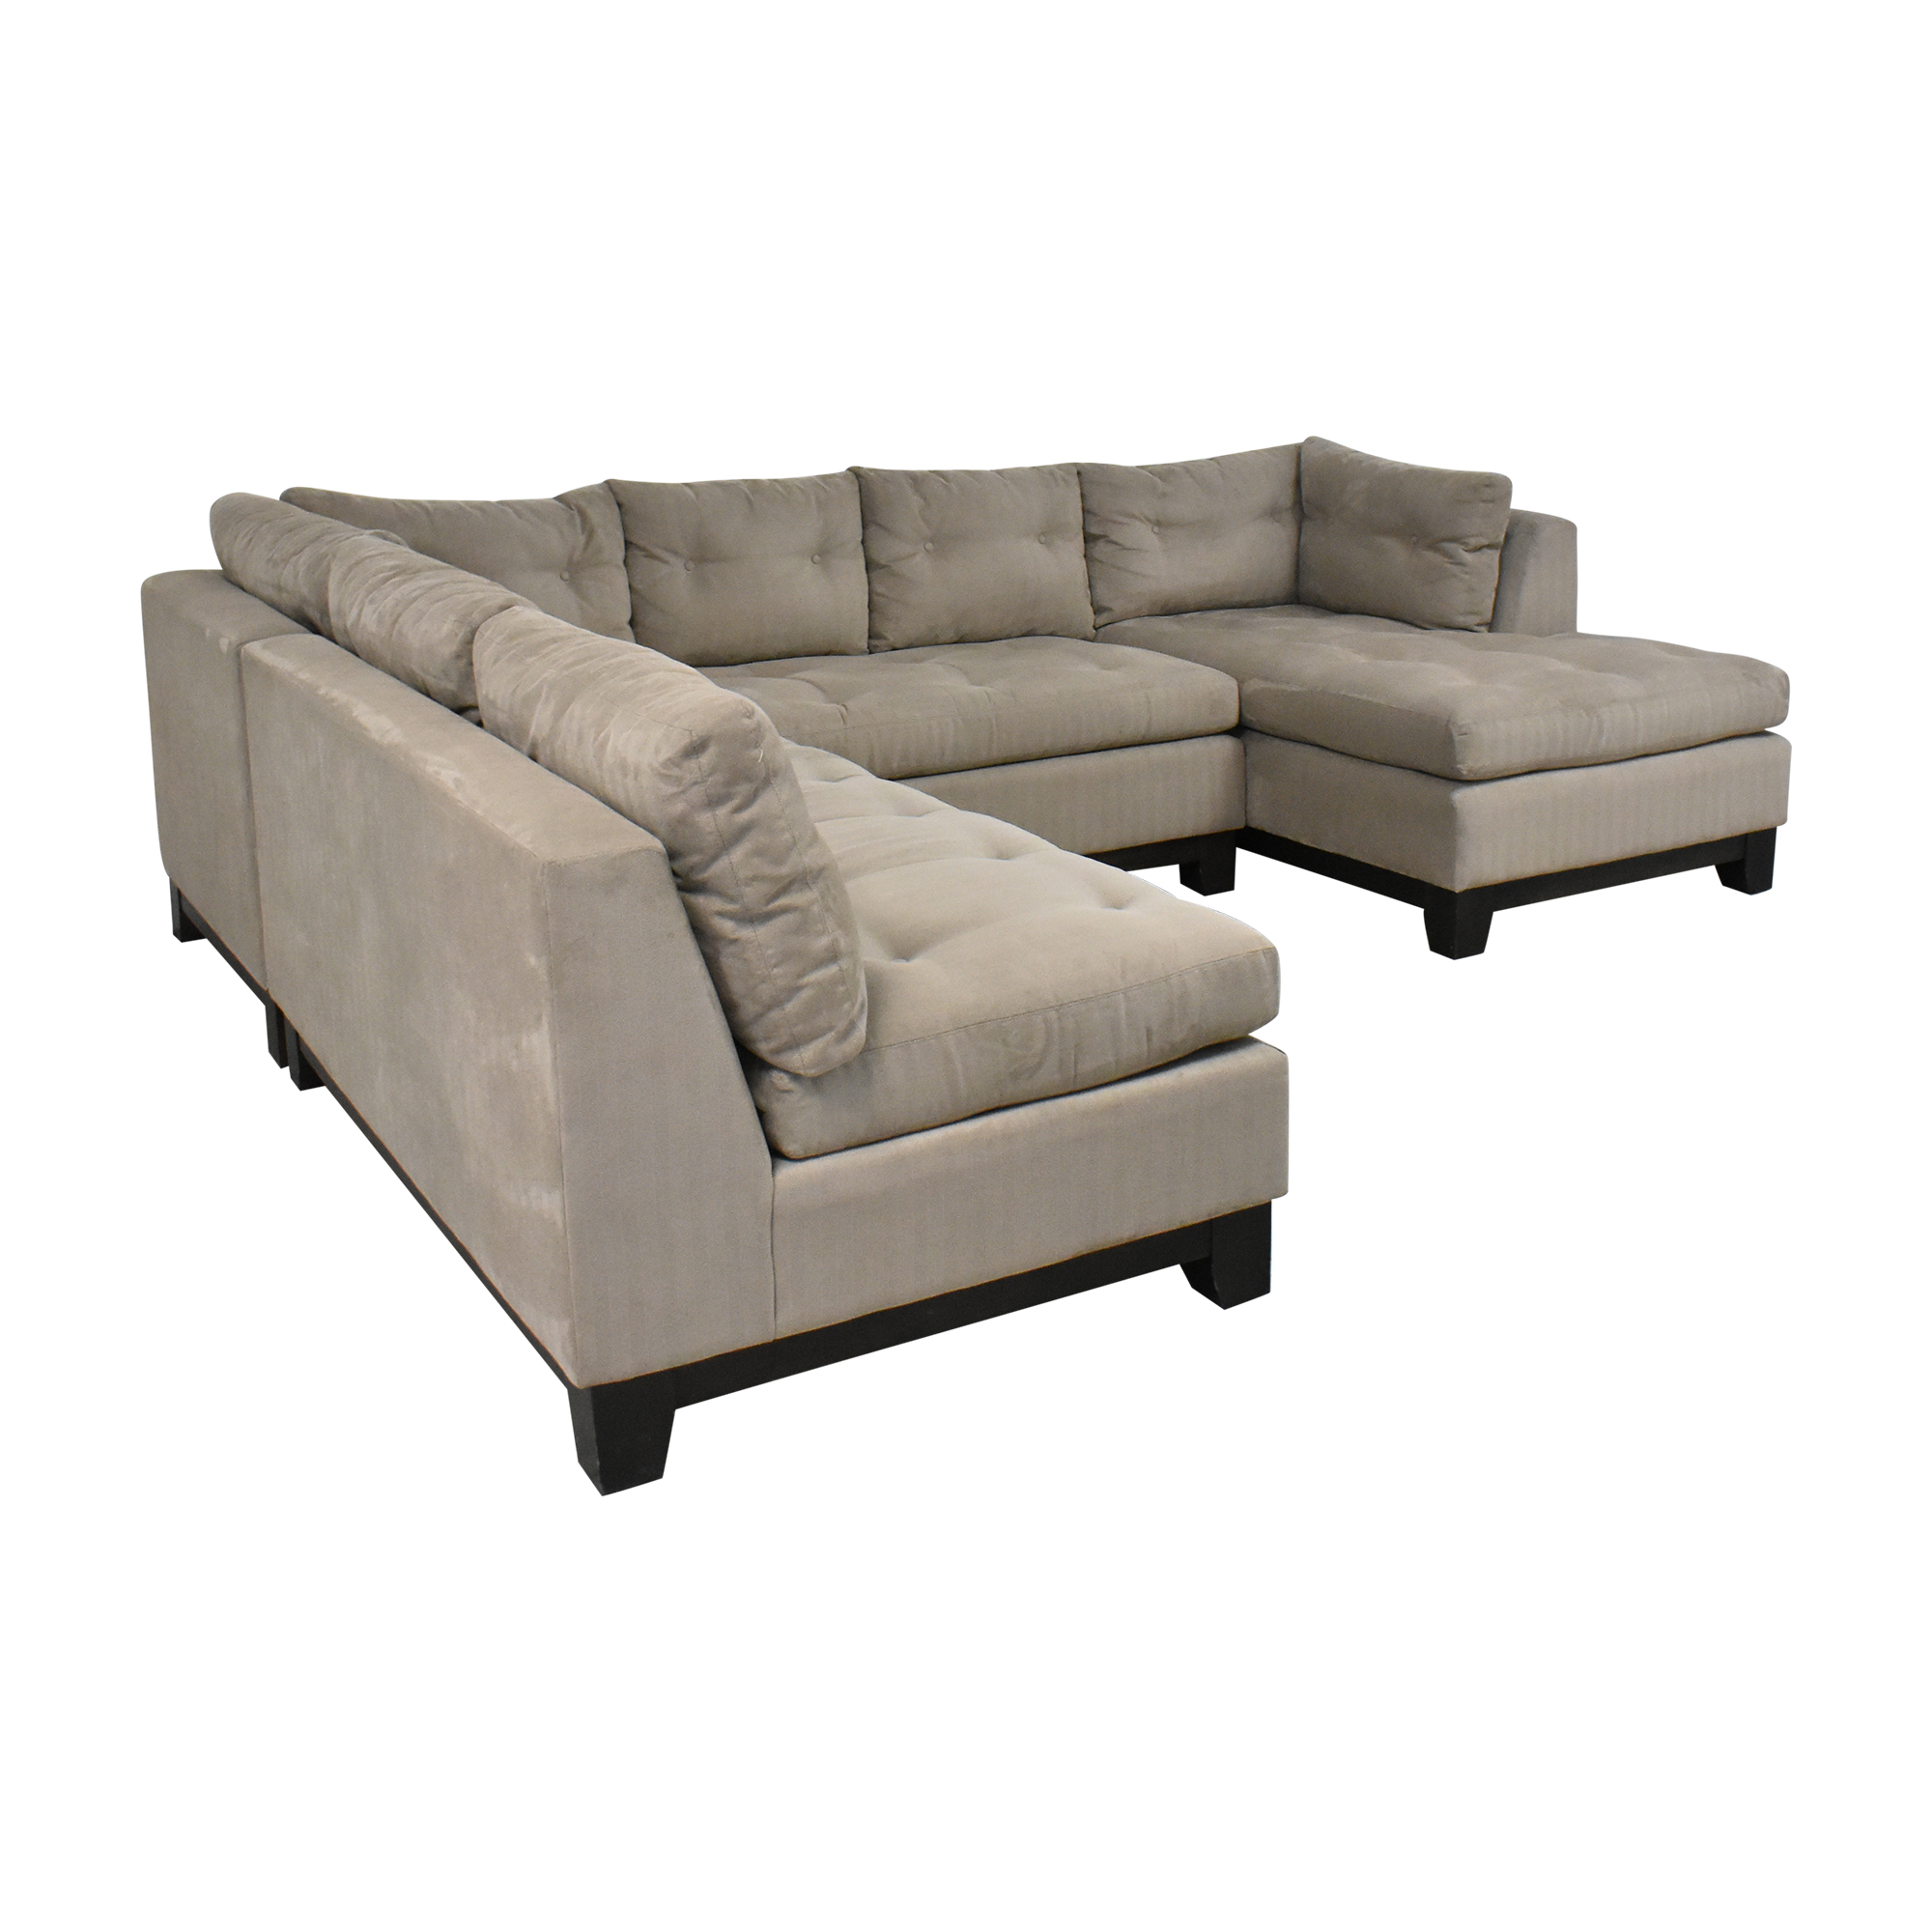 Arhaus Arhaus Camden Collection Chaise Sectional Sofa second hand